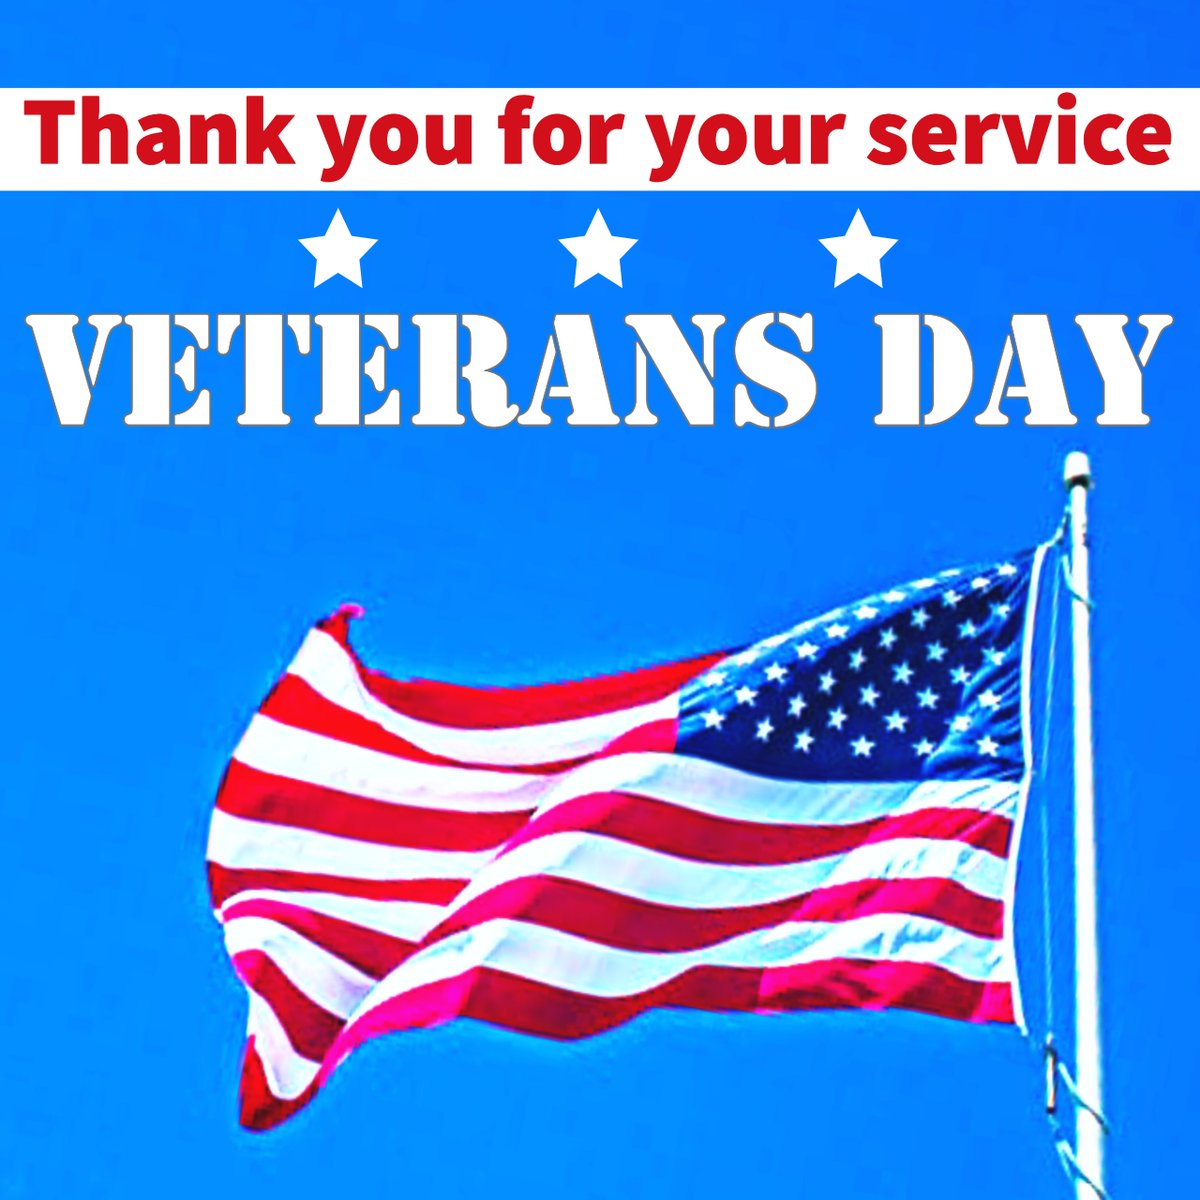 To those who have served... Thank you for your service.  <br>http://pic.twitter.com/NV0X5zwGWo